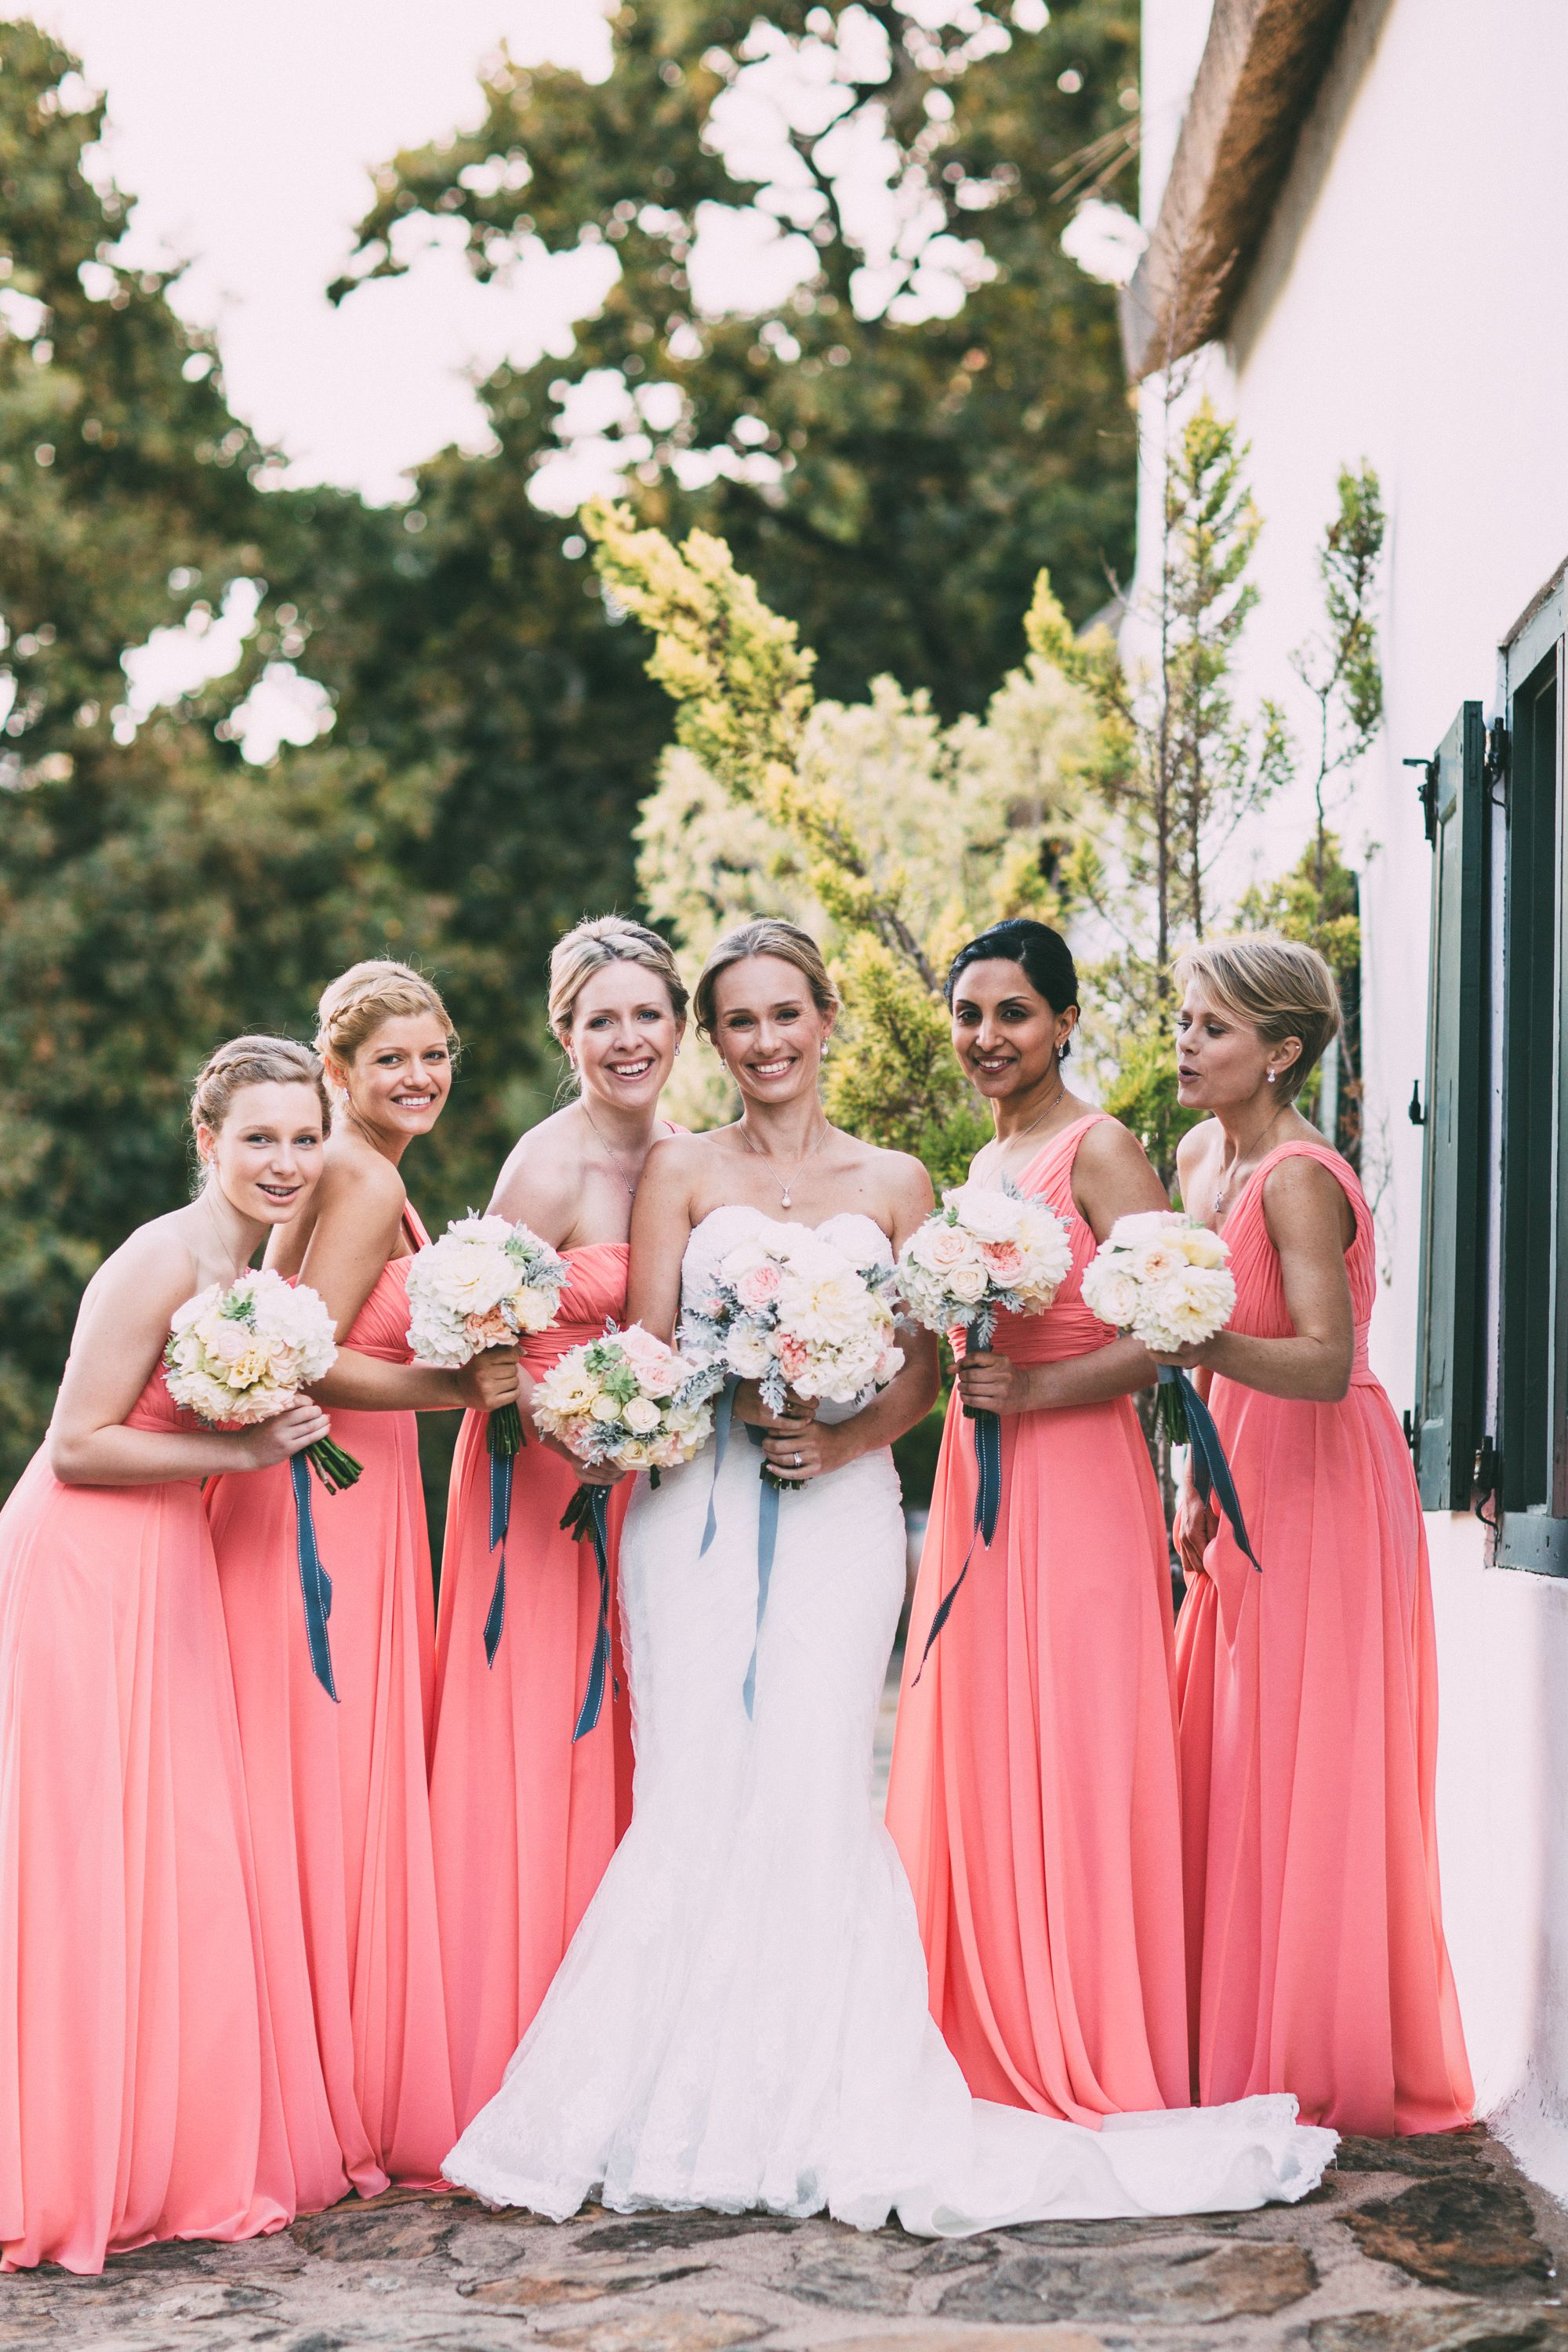 Country Wedding Coral Bridesmaid Dresses Coral And Teal Image